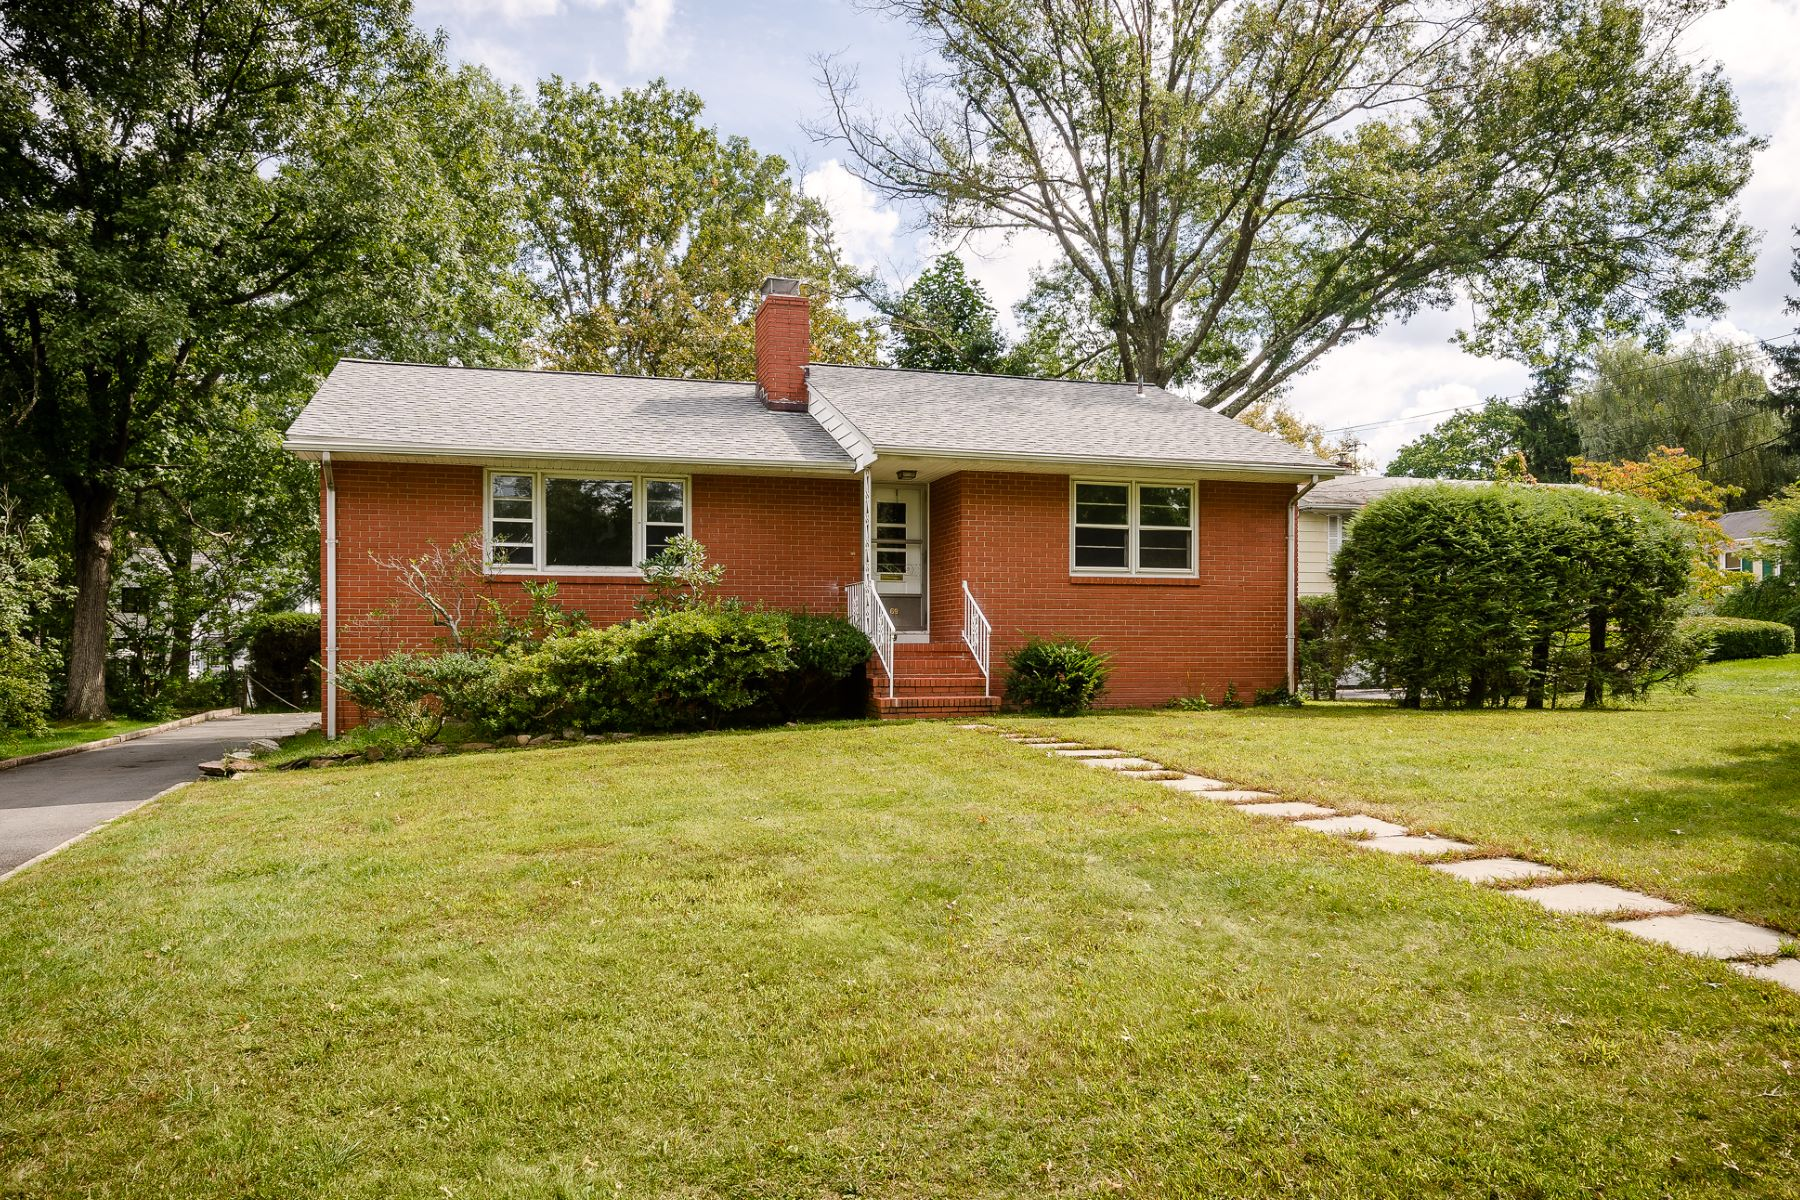 Single Family Home for Rent at Ease of Living in this Convenient Princeton Rental 69 Harris Road, Princeton, New Jersey 08540 United States